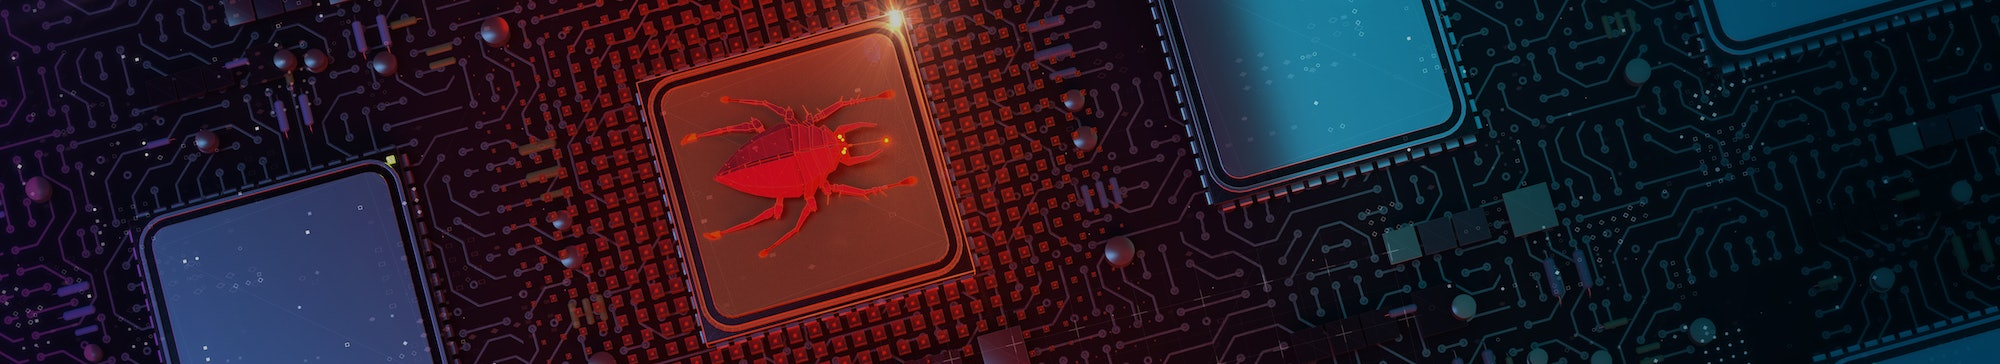 red glowing compiter bug on infected chip in cyberspace 3d redner. spyware, malware, virus trojan, k...